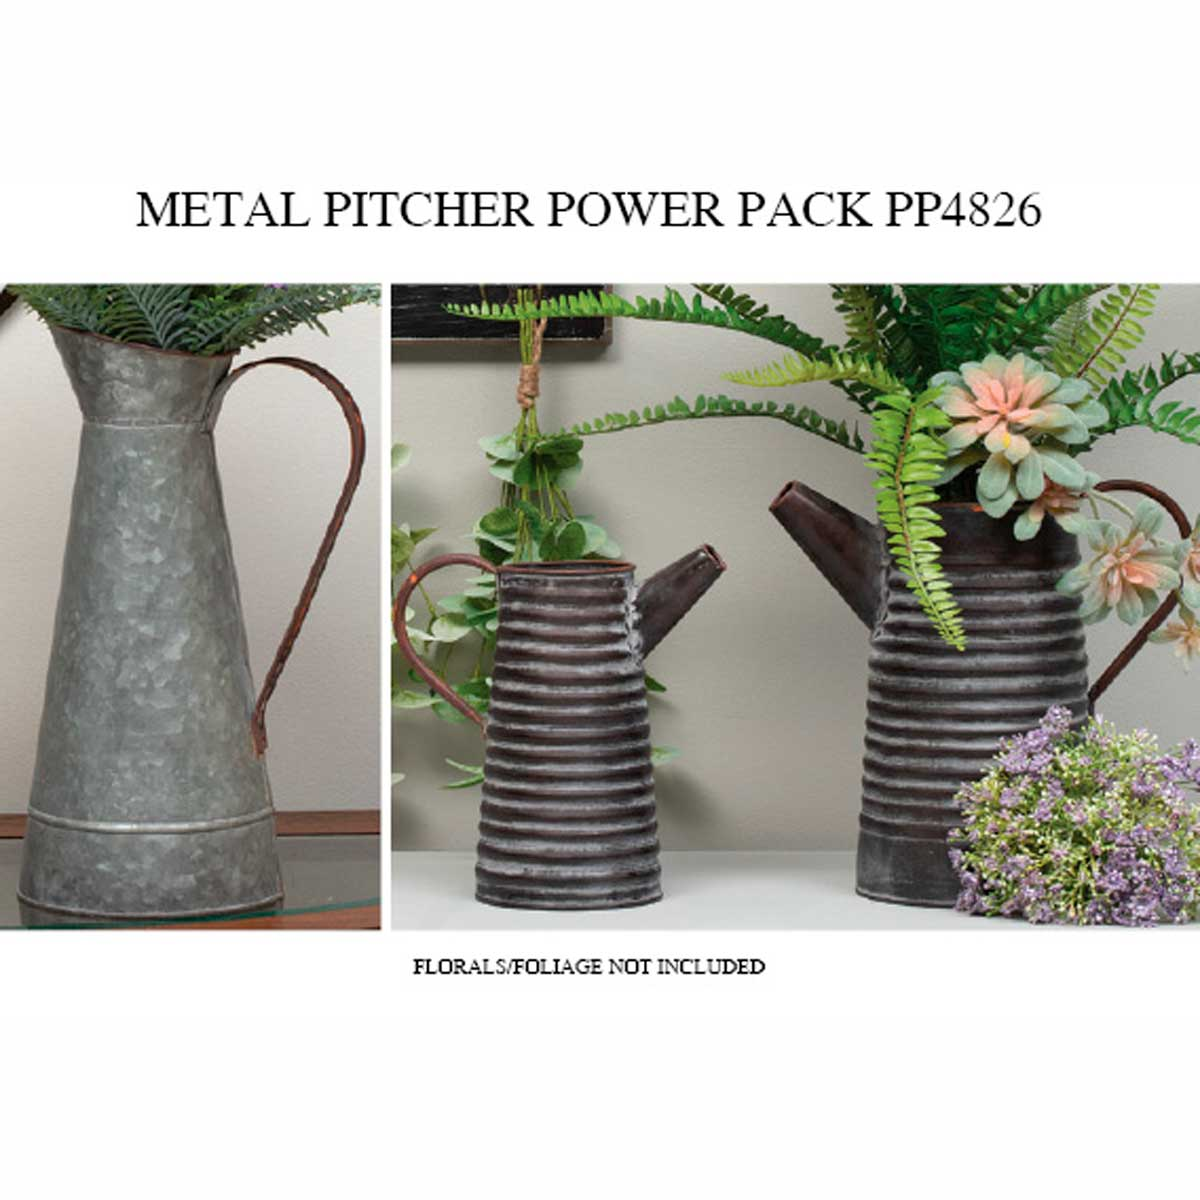 METAL PITCHER POWER PACK 6 UNITS